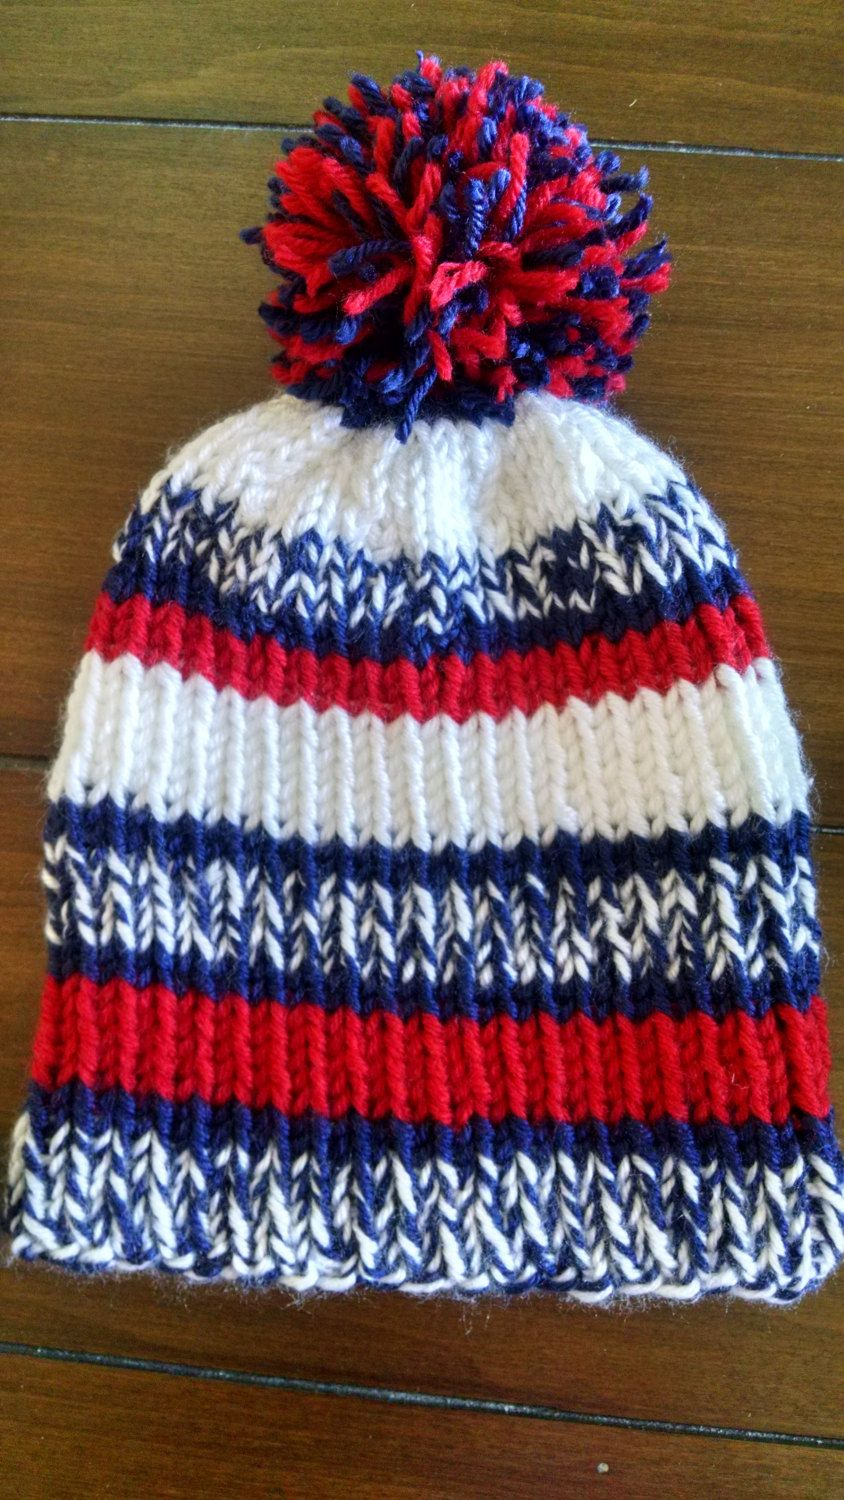 Knitting Pattern For Nfl Hats : Knitting pattern for hats inspired by the NFL sidelines hat All NFL teams by ...